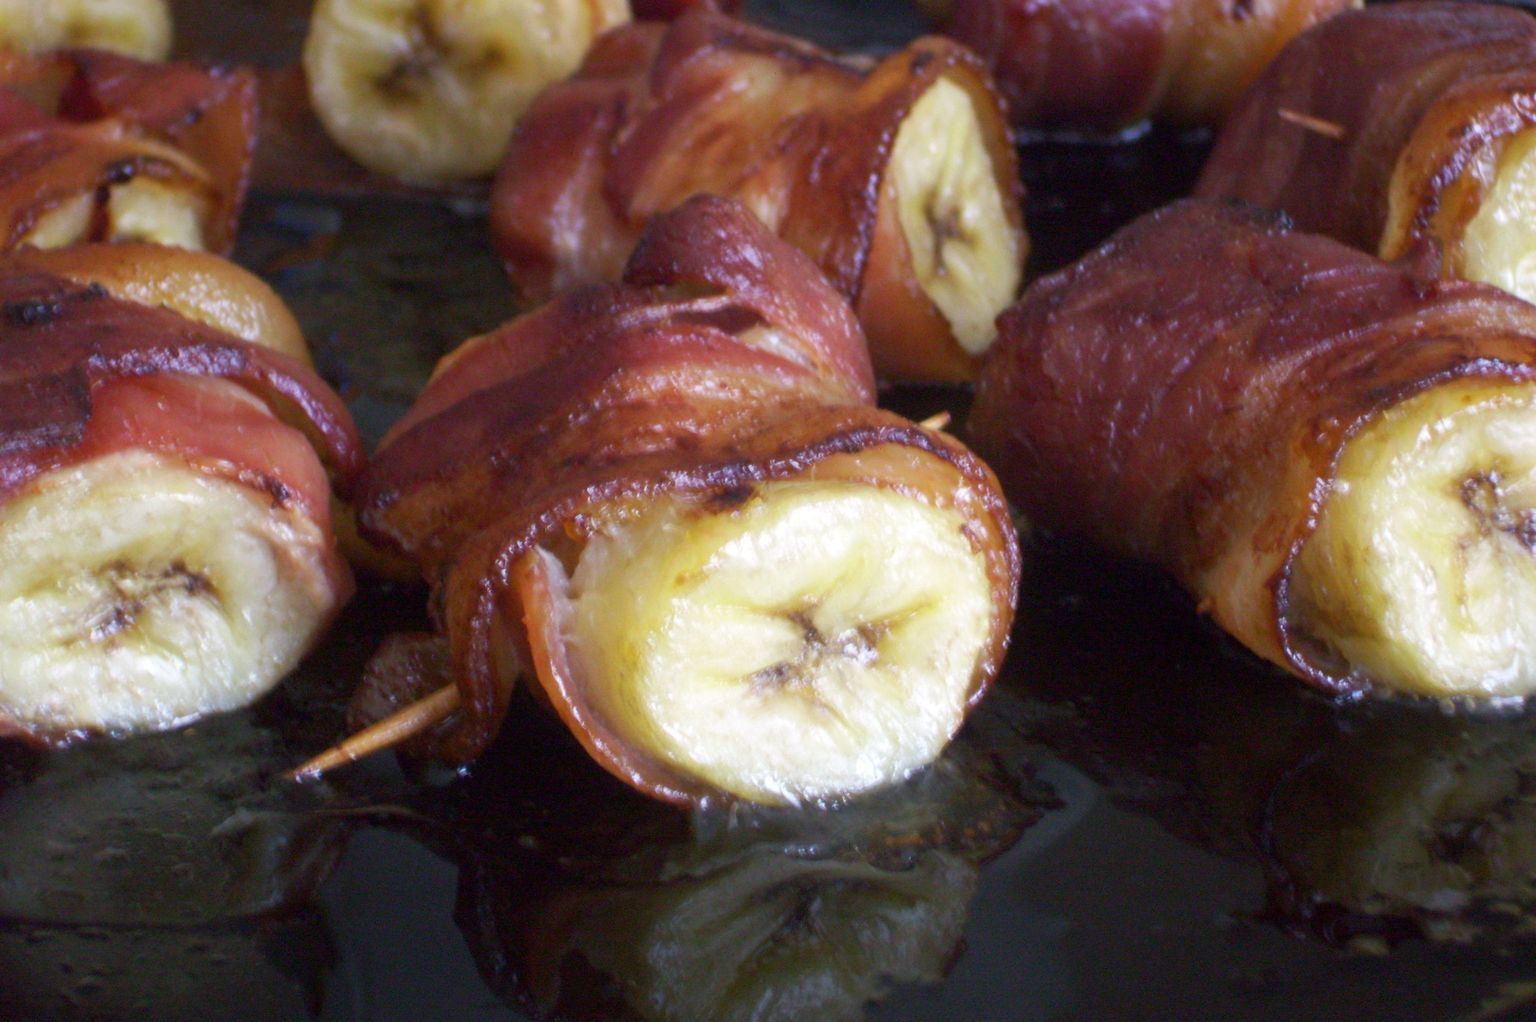 42c4540f-c3d5-4654-8529-5efb832bed7b--Banana_wrapped_in_Bacon_Roasted_plantains_and_035.JPG